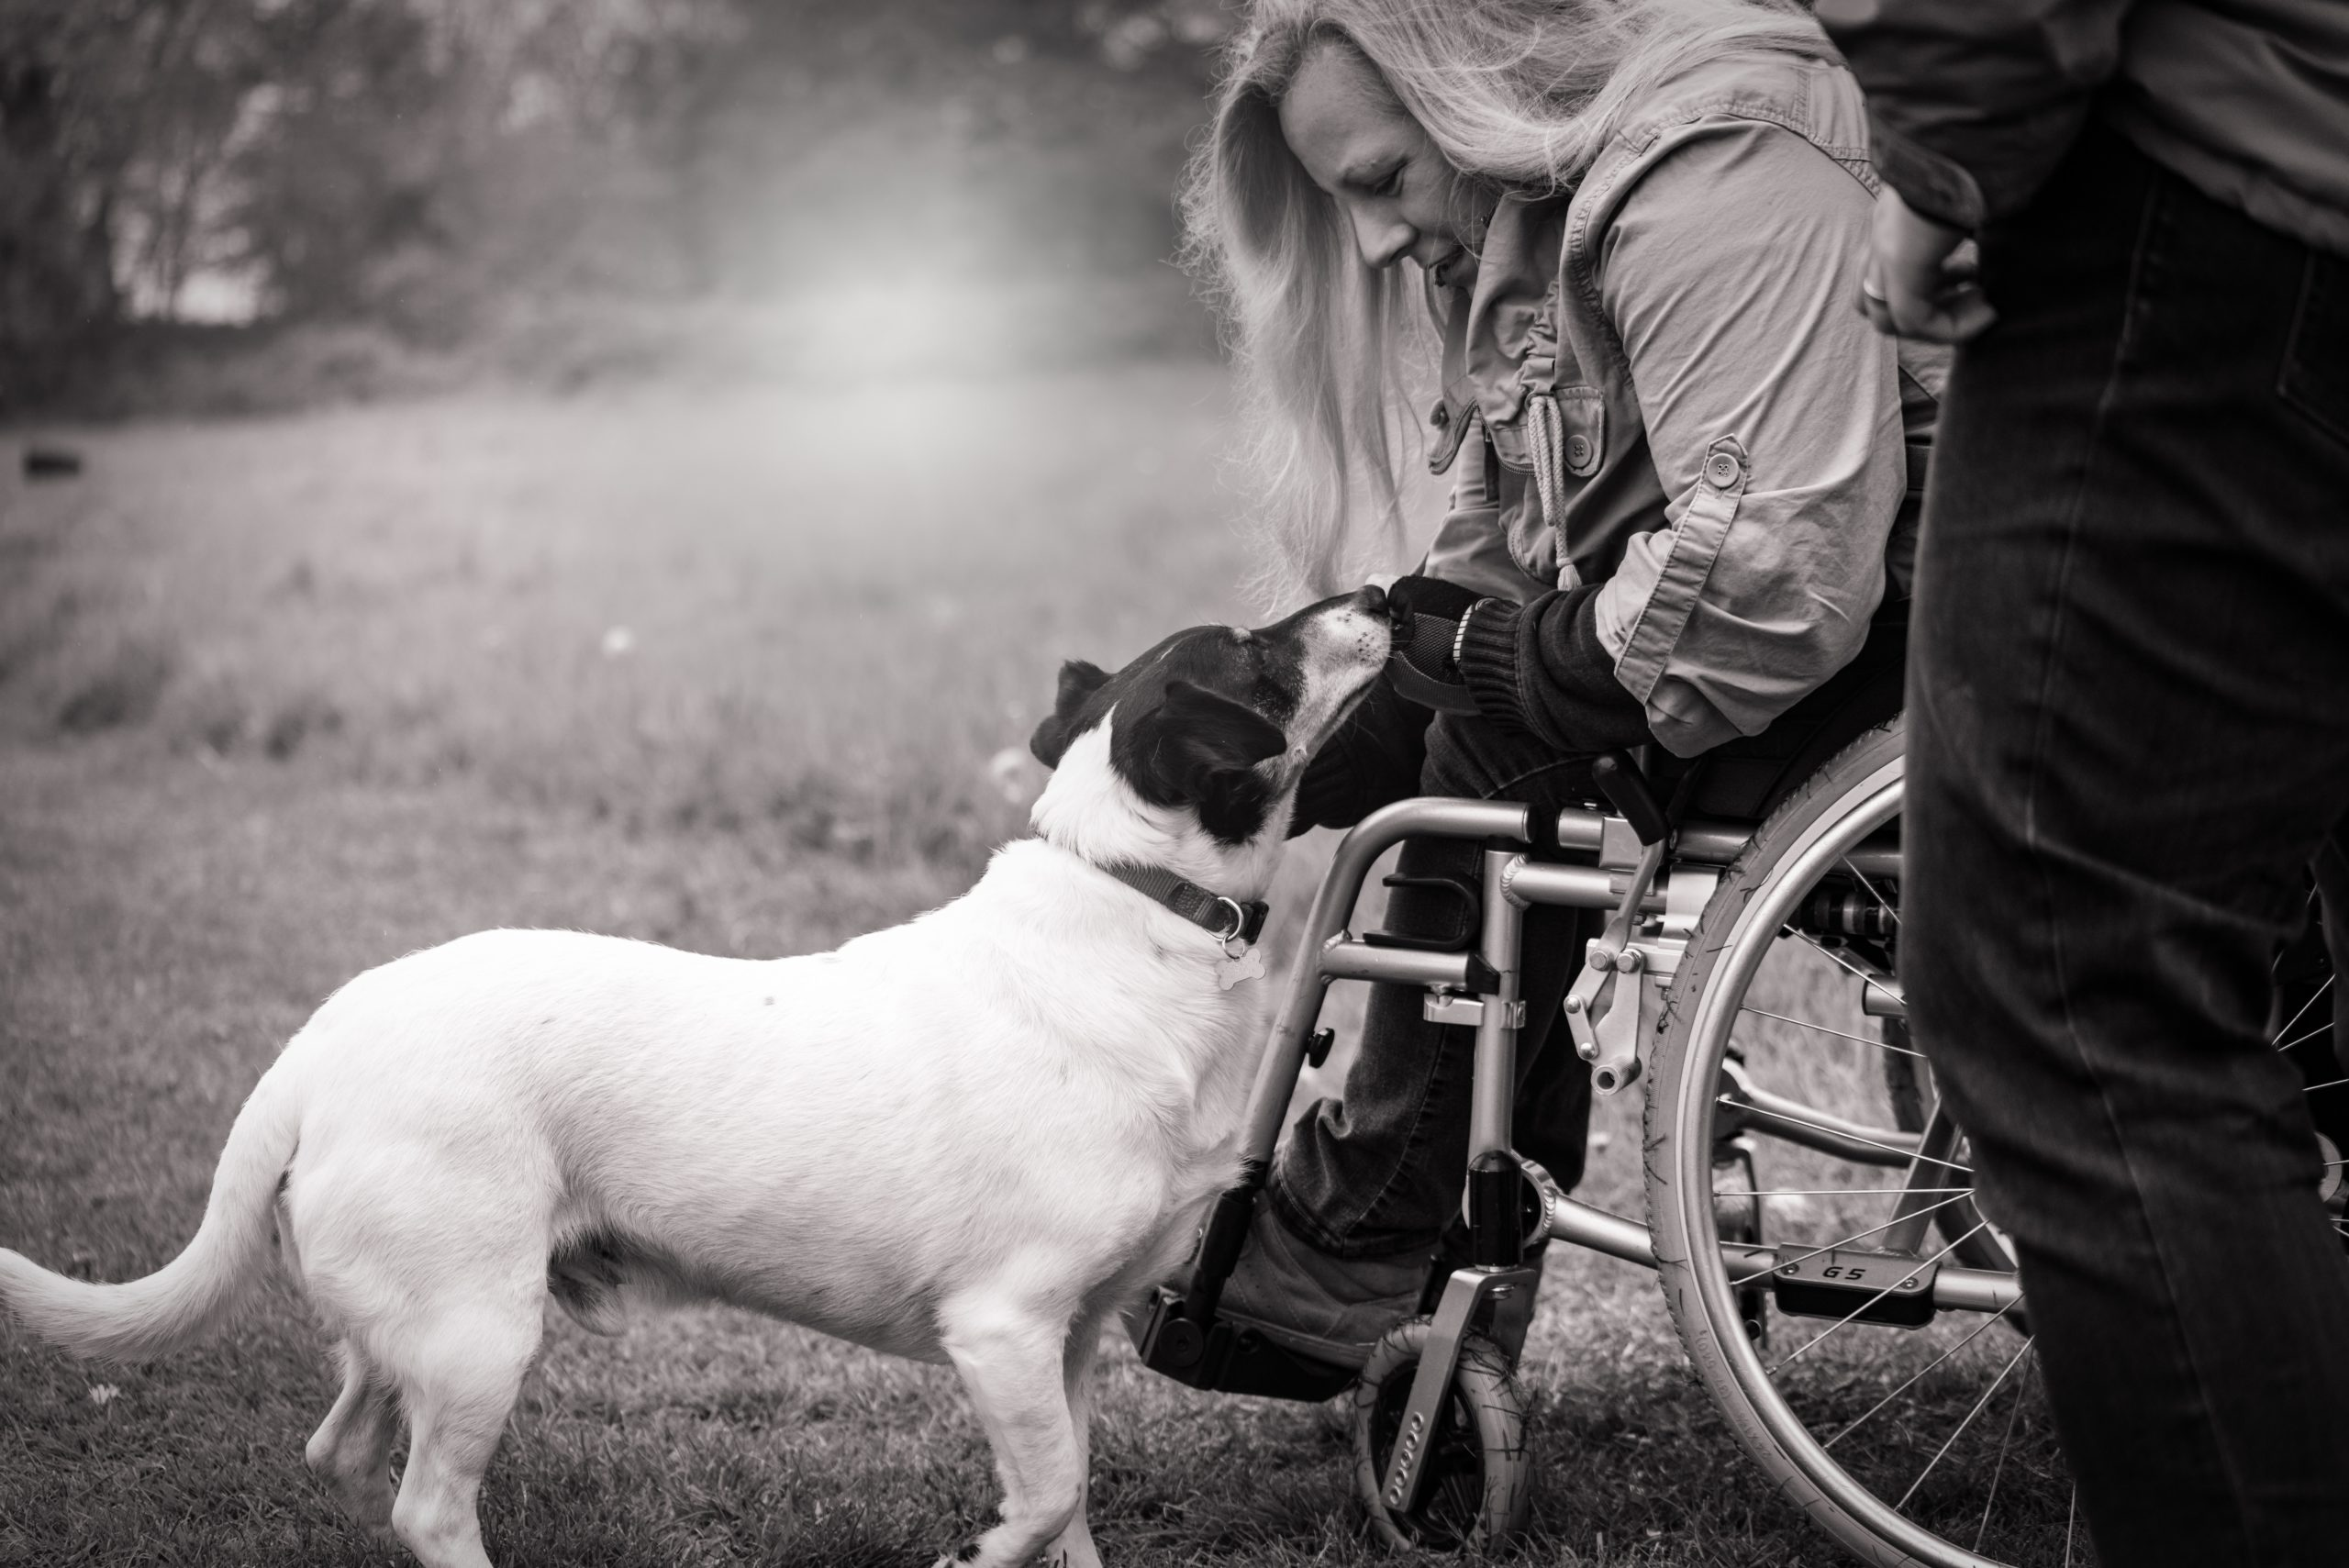 black and white photo of a light-skinned woman sitting in a wheelchair, leaning over to give attention to a small white and black dog, as they pause on their way through a field.